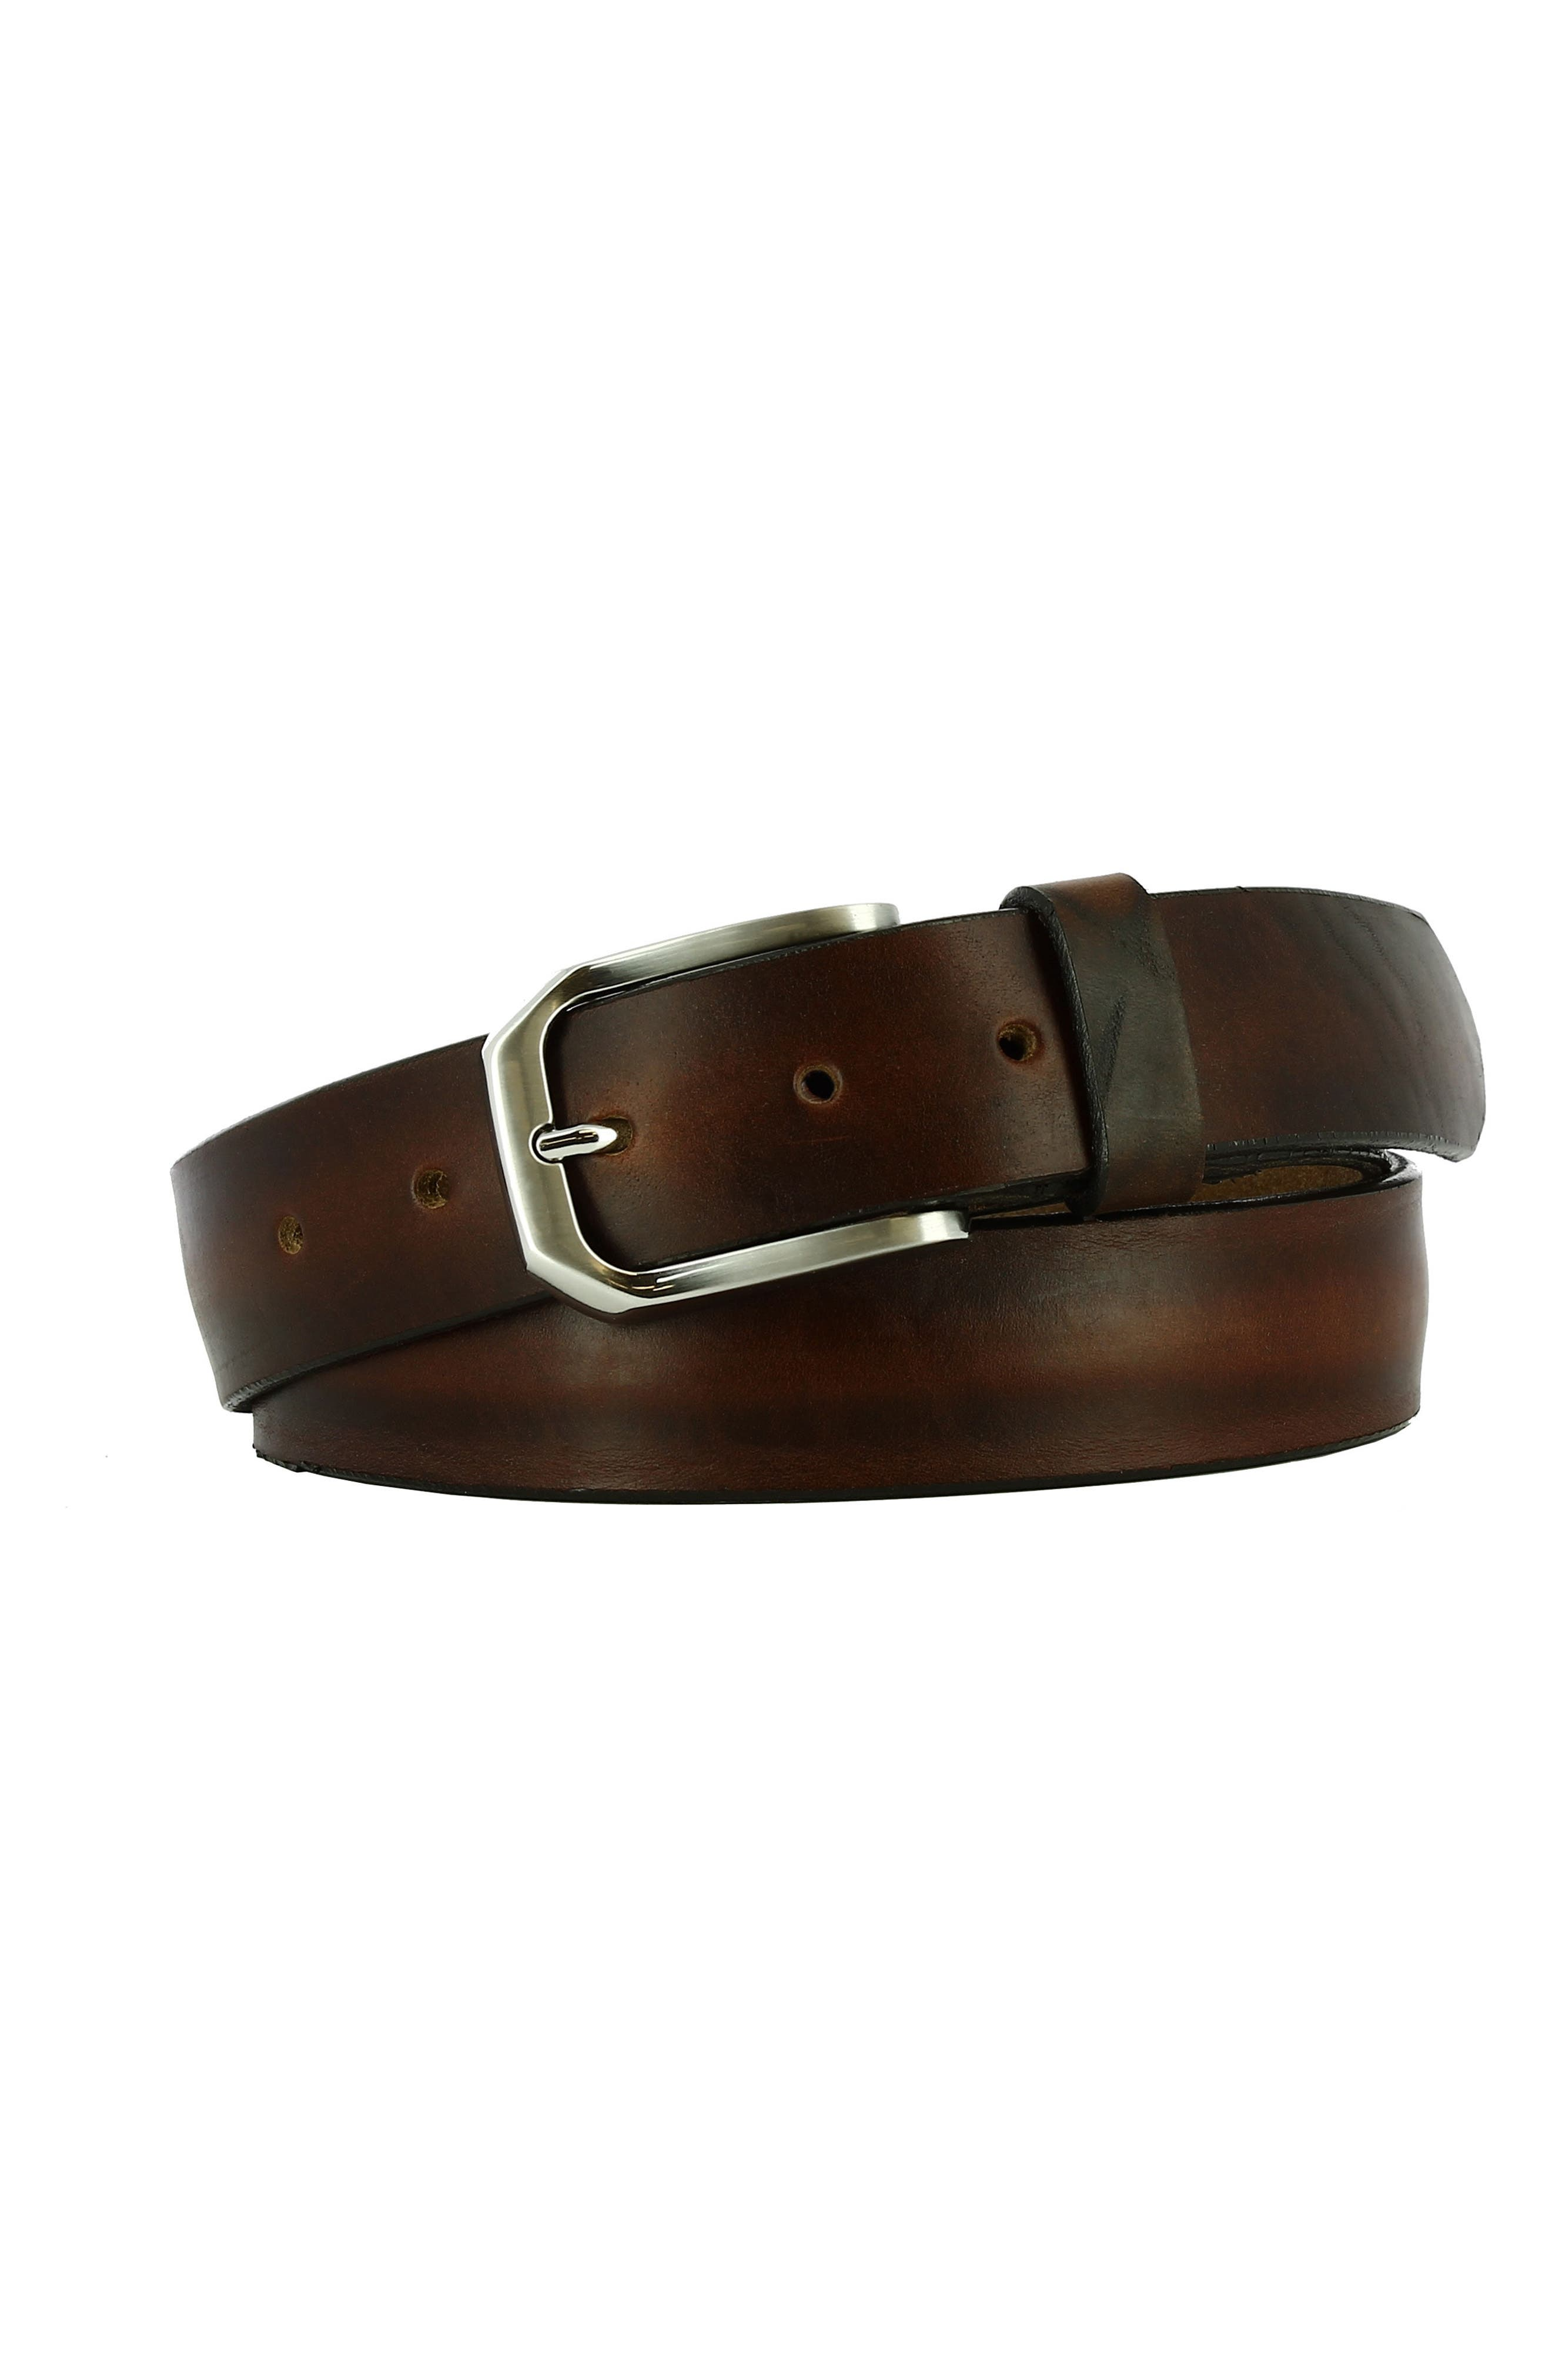 Remo Tulliani Gunner Leather Belt